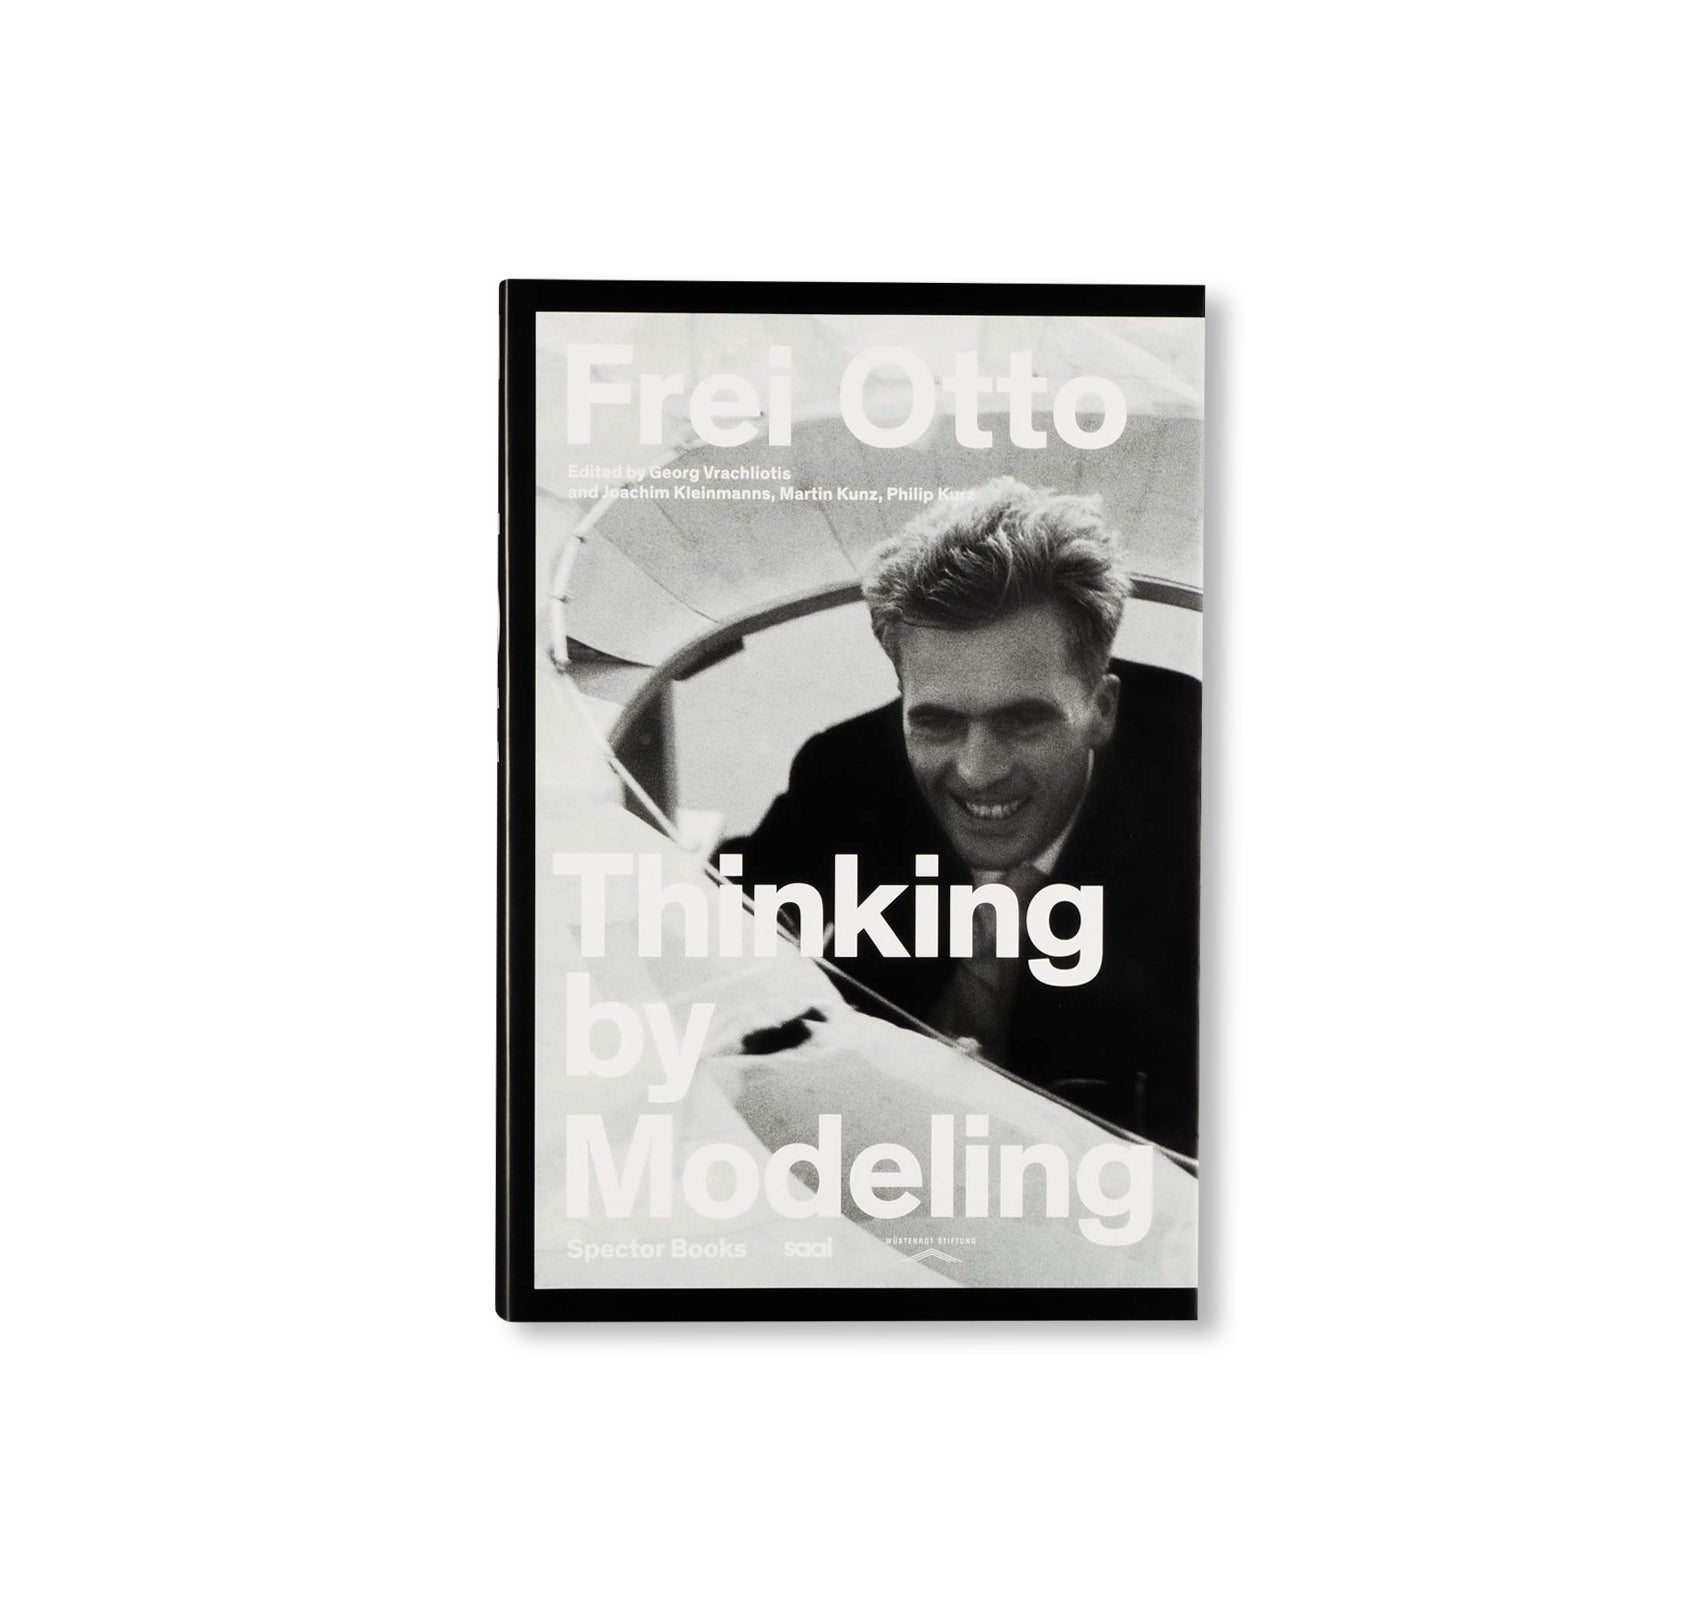 THINKING BY MODELING by Frei Otto